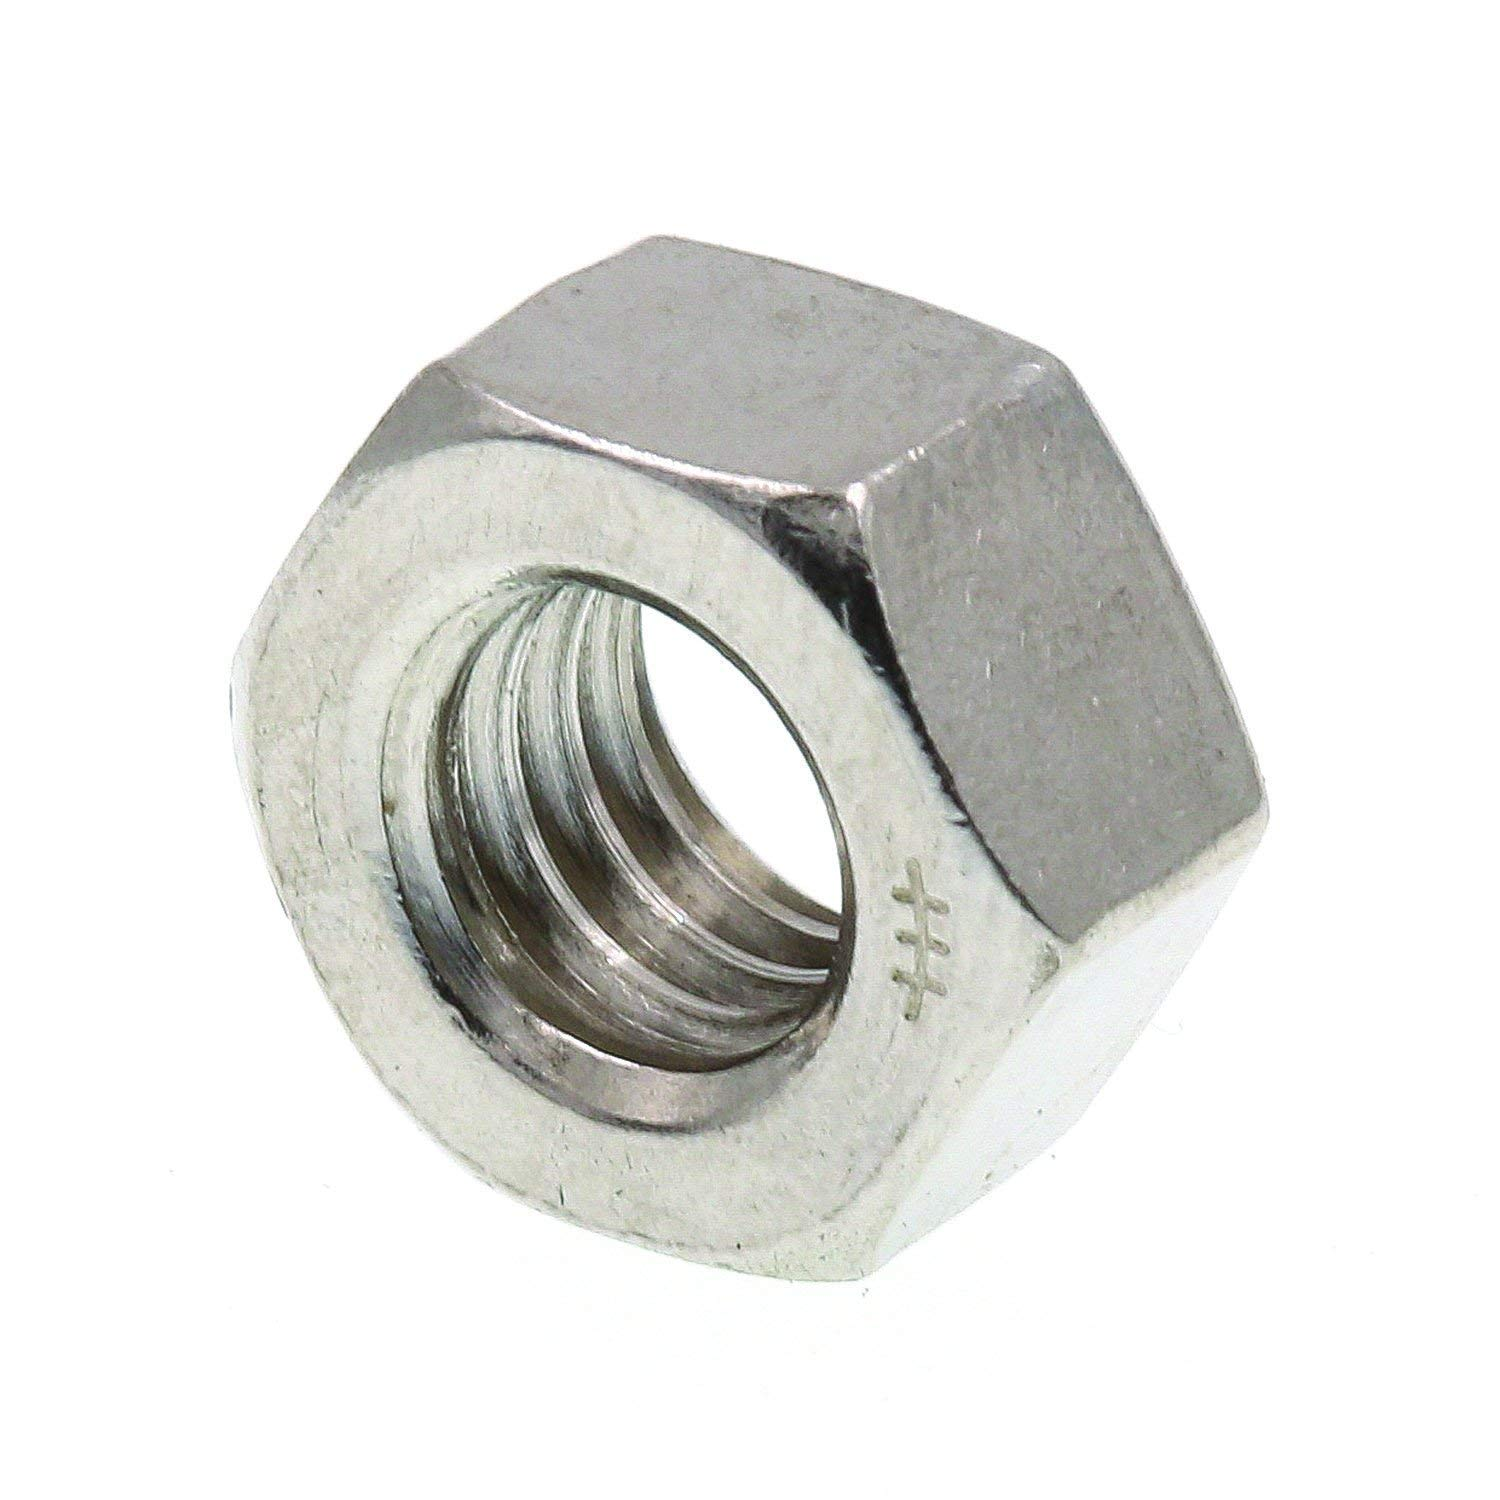 New Life 33-655H Hex Nut Pack of 50 Piece 5//16 in-18 Zinc Finish